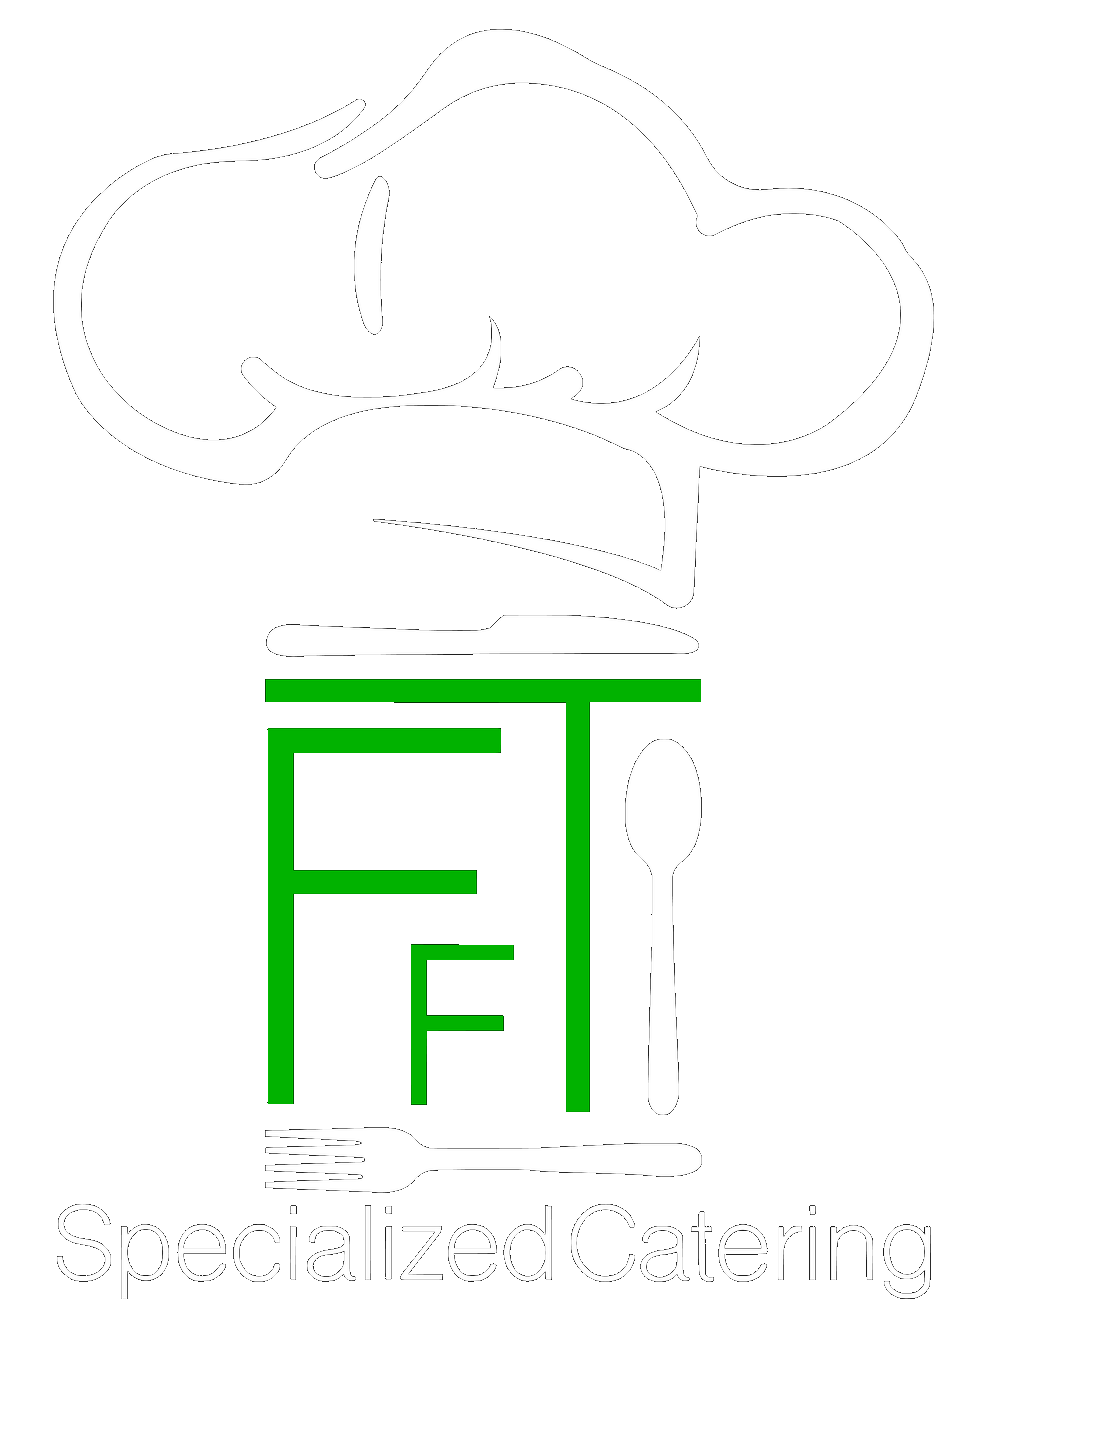 Food For Thought Specialized Catering